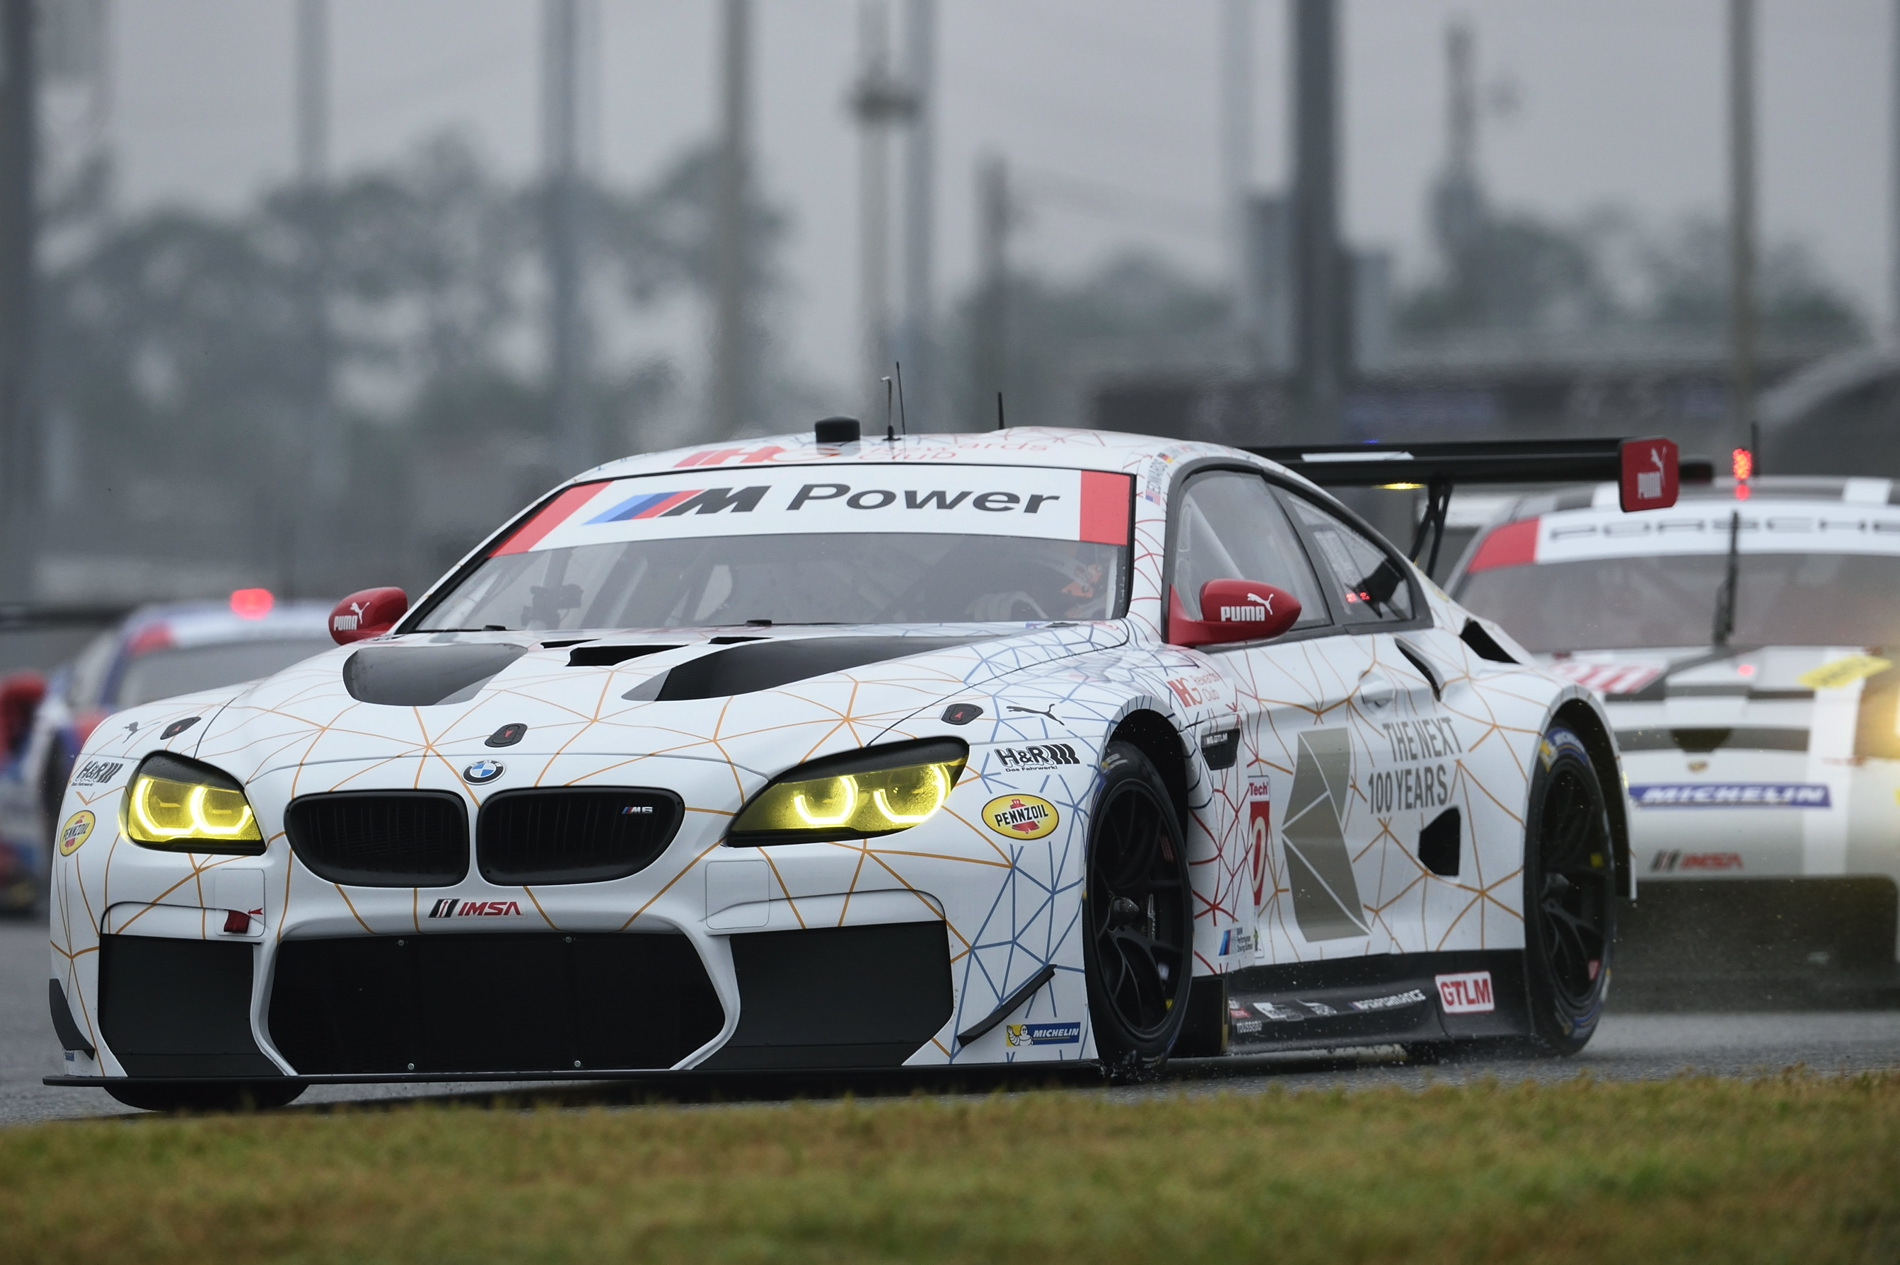 New M6 Gtlm Racing Cars Qualify 3rd And 6th For 54th Rolex